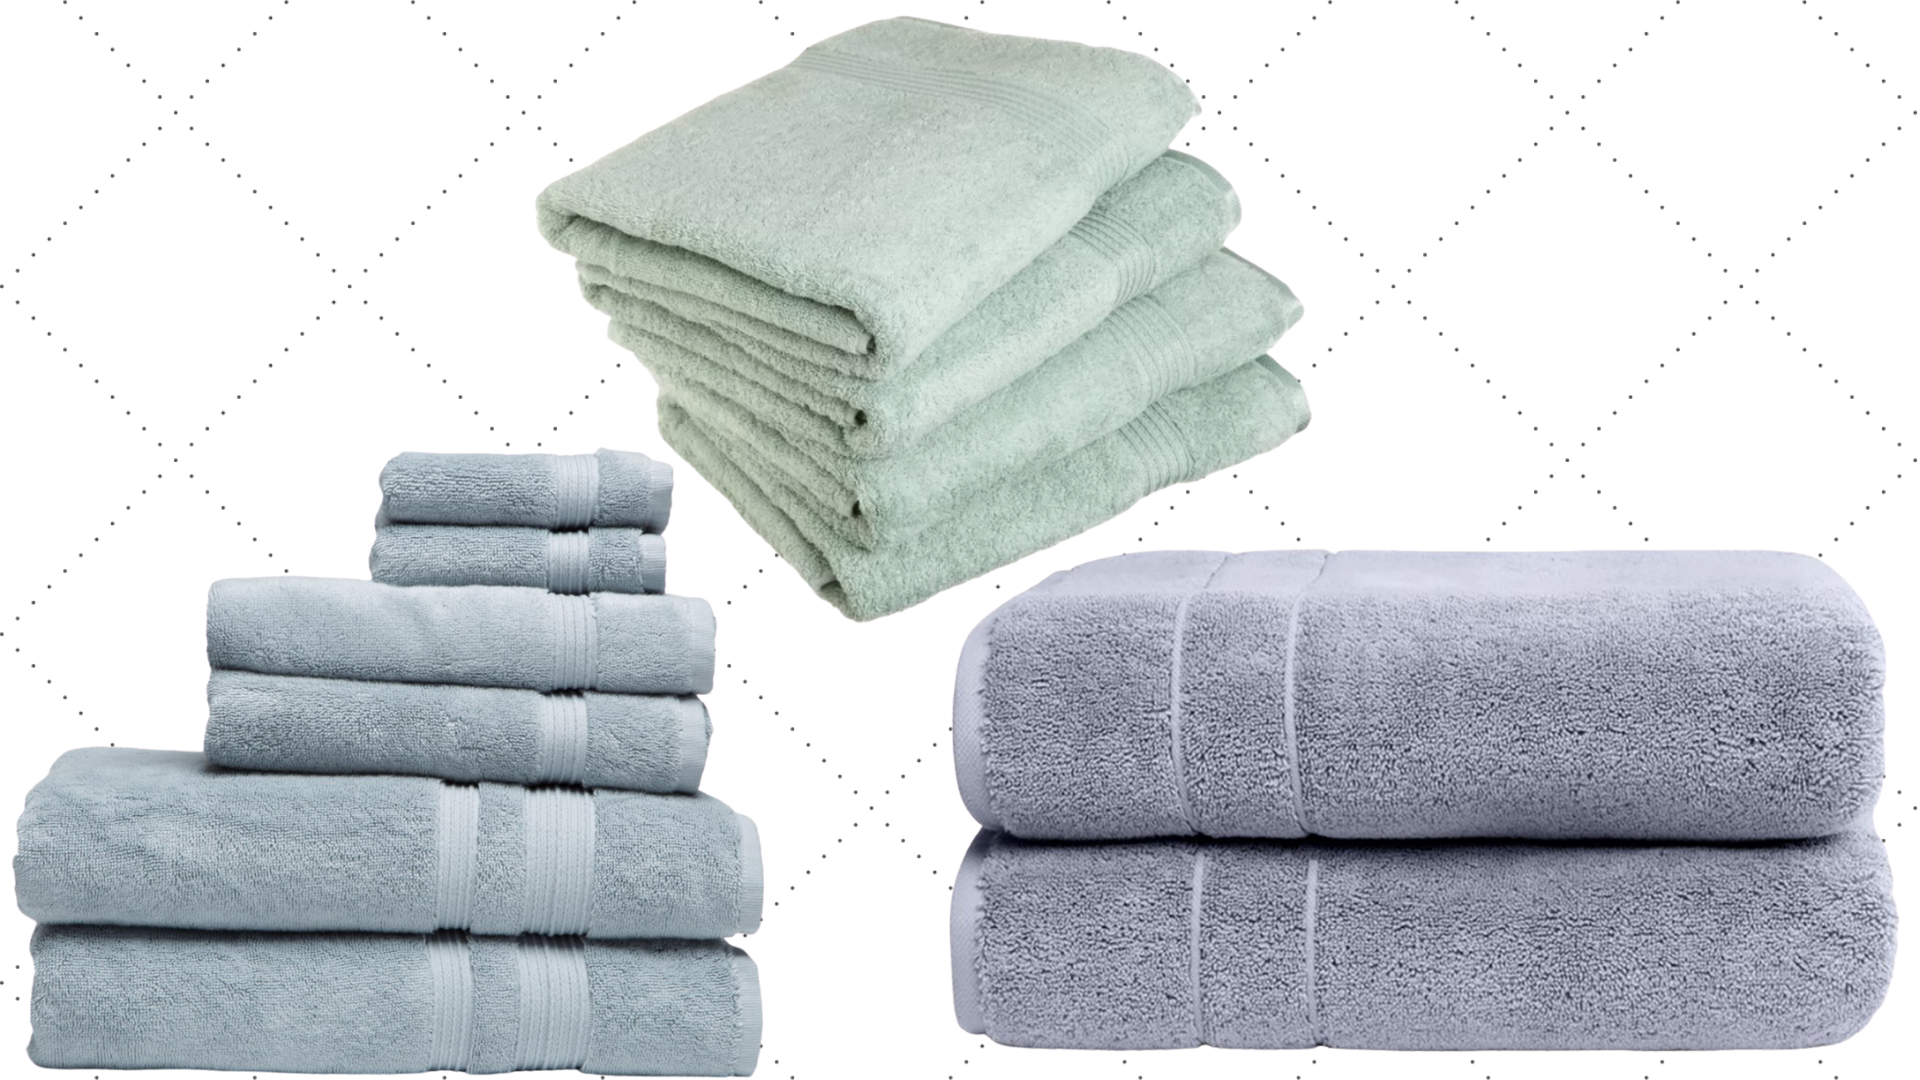 7 Soft, Luxurious Bath Towels That Will Make You Feel Like You Just Stepped Into a Spa